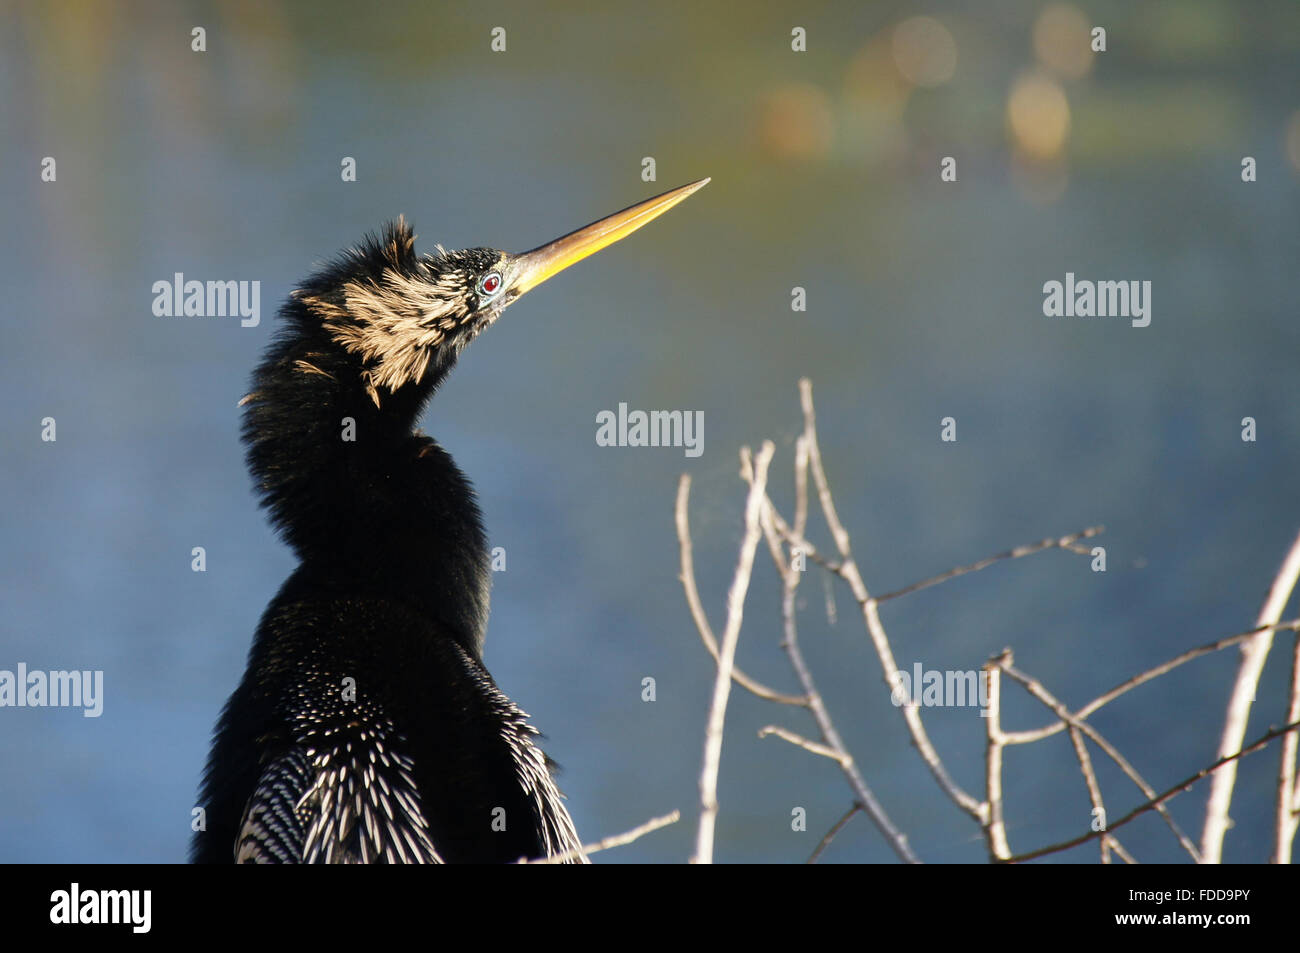 Anhinga portrait (looking to the right). - Stock Image